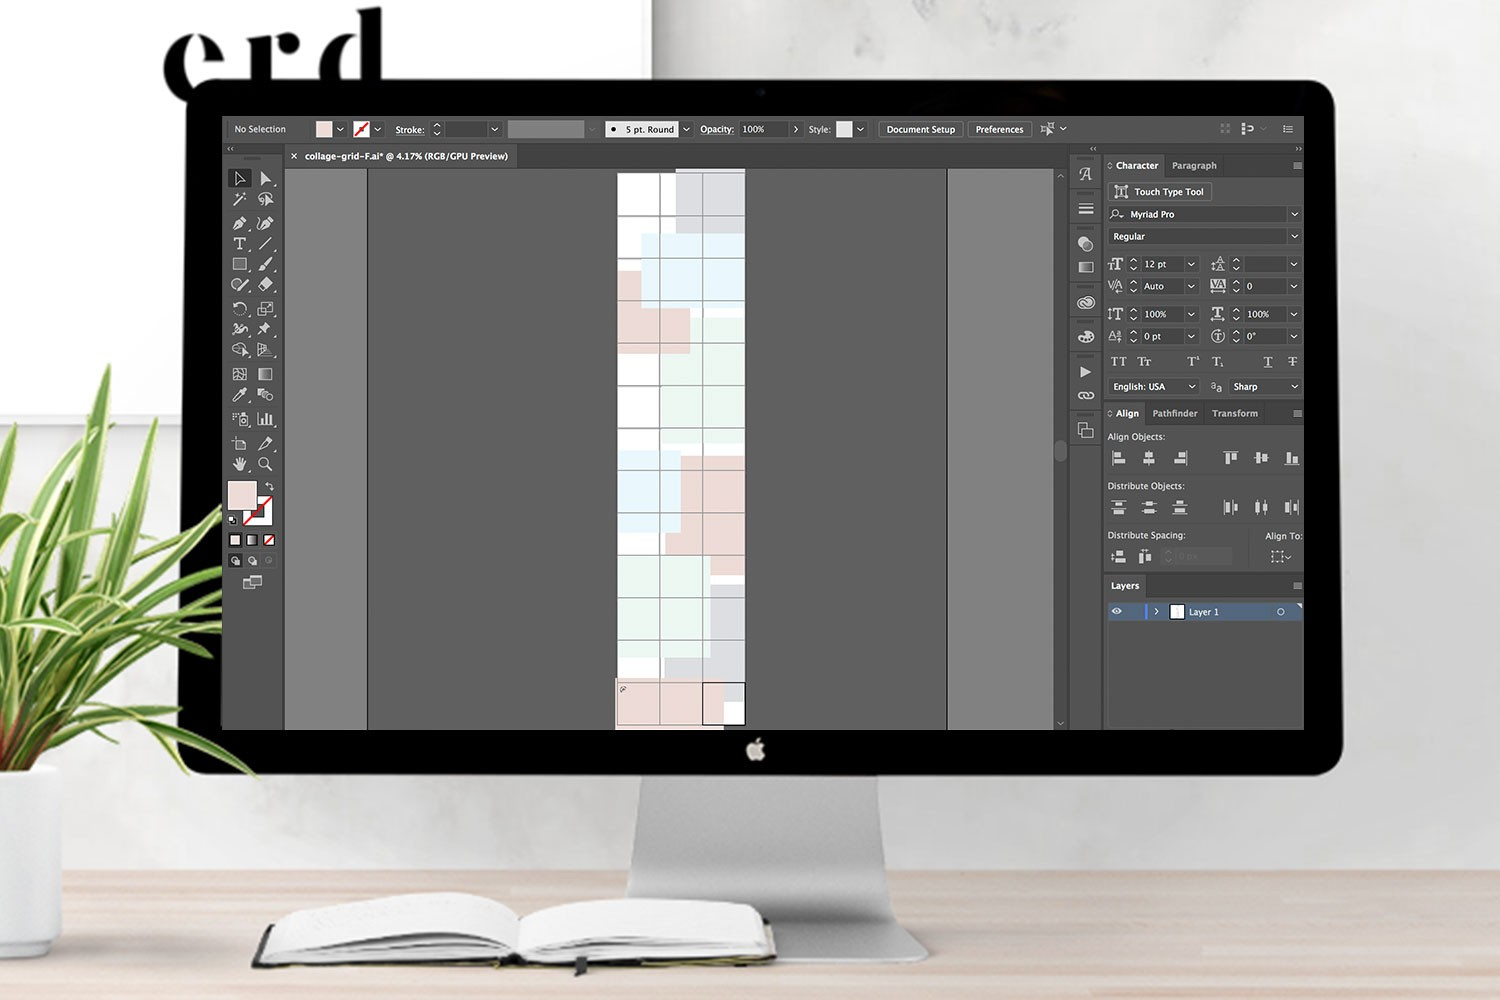 photo editing app for creating an instagram theme